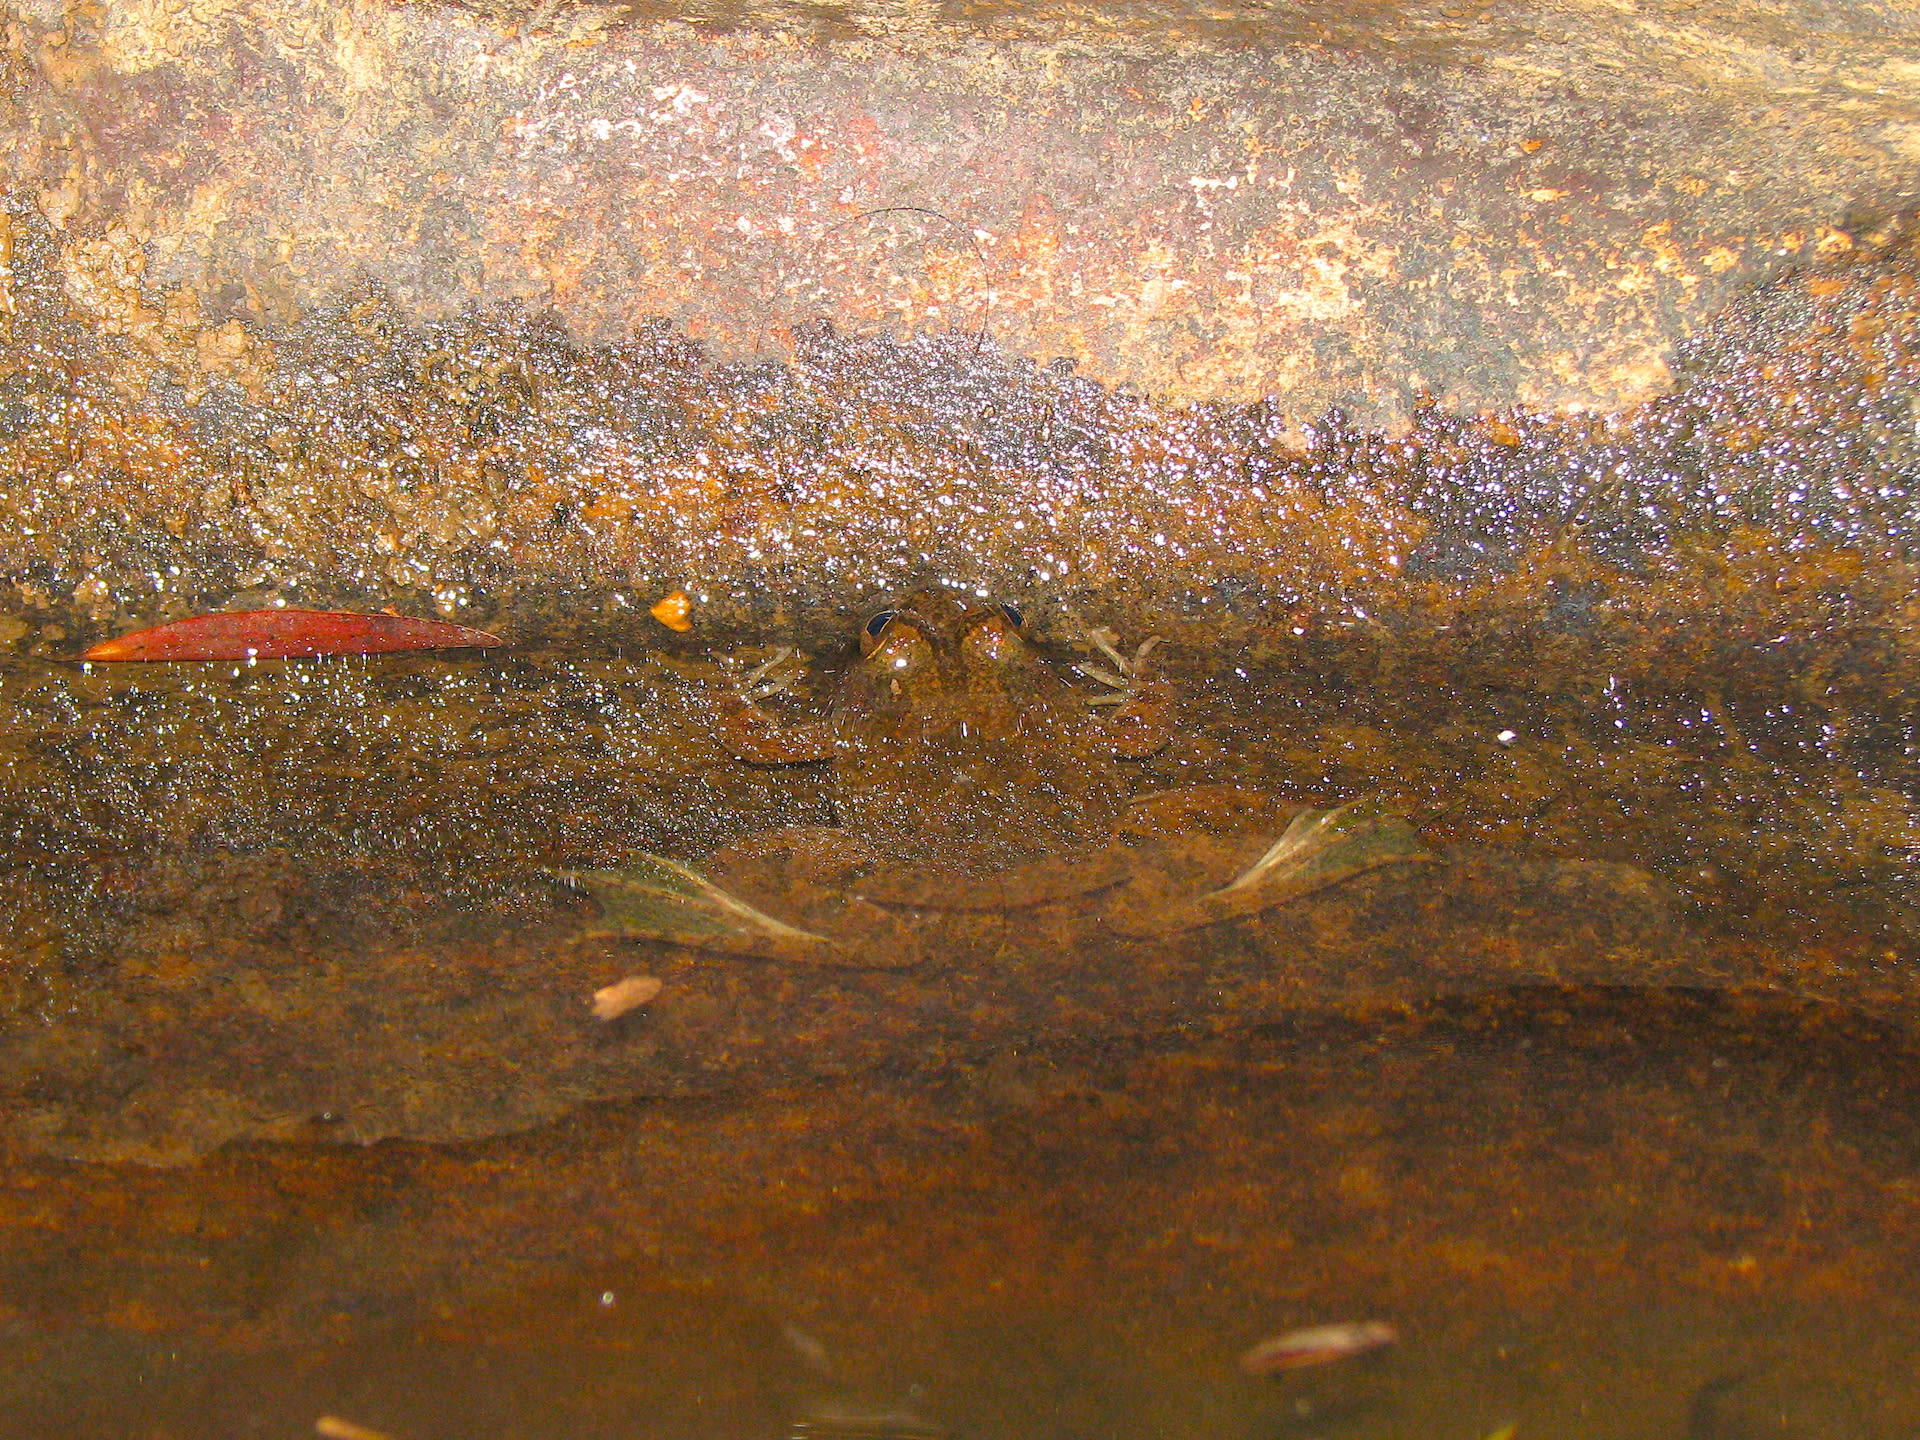 Common skittering frog camouflaging with water and rock